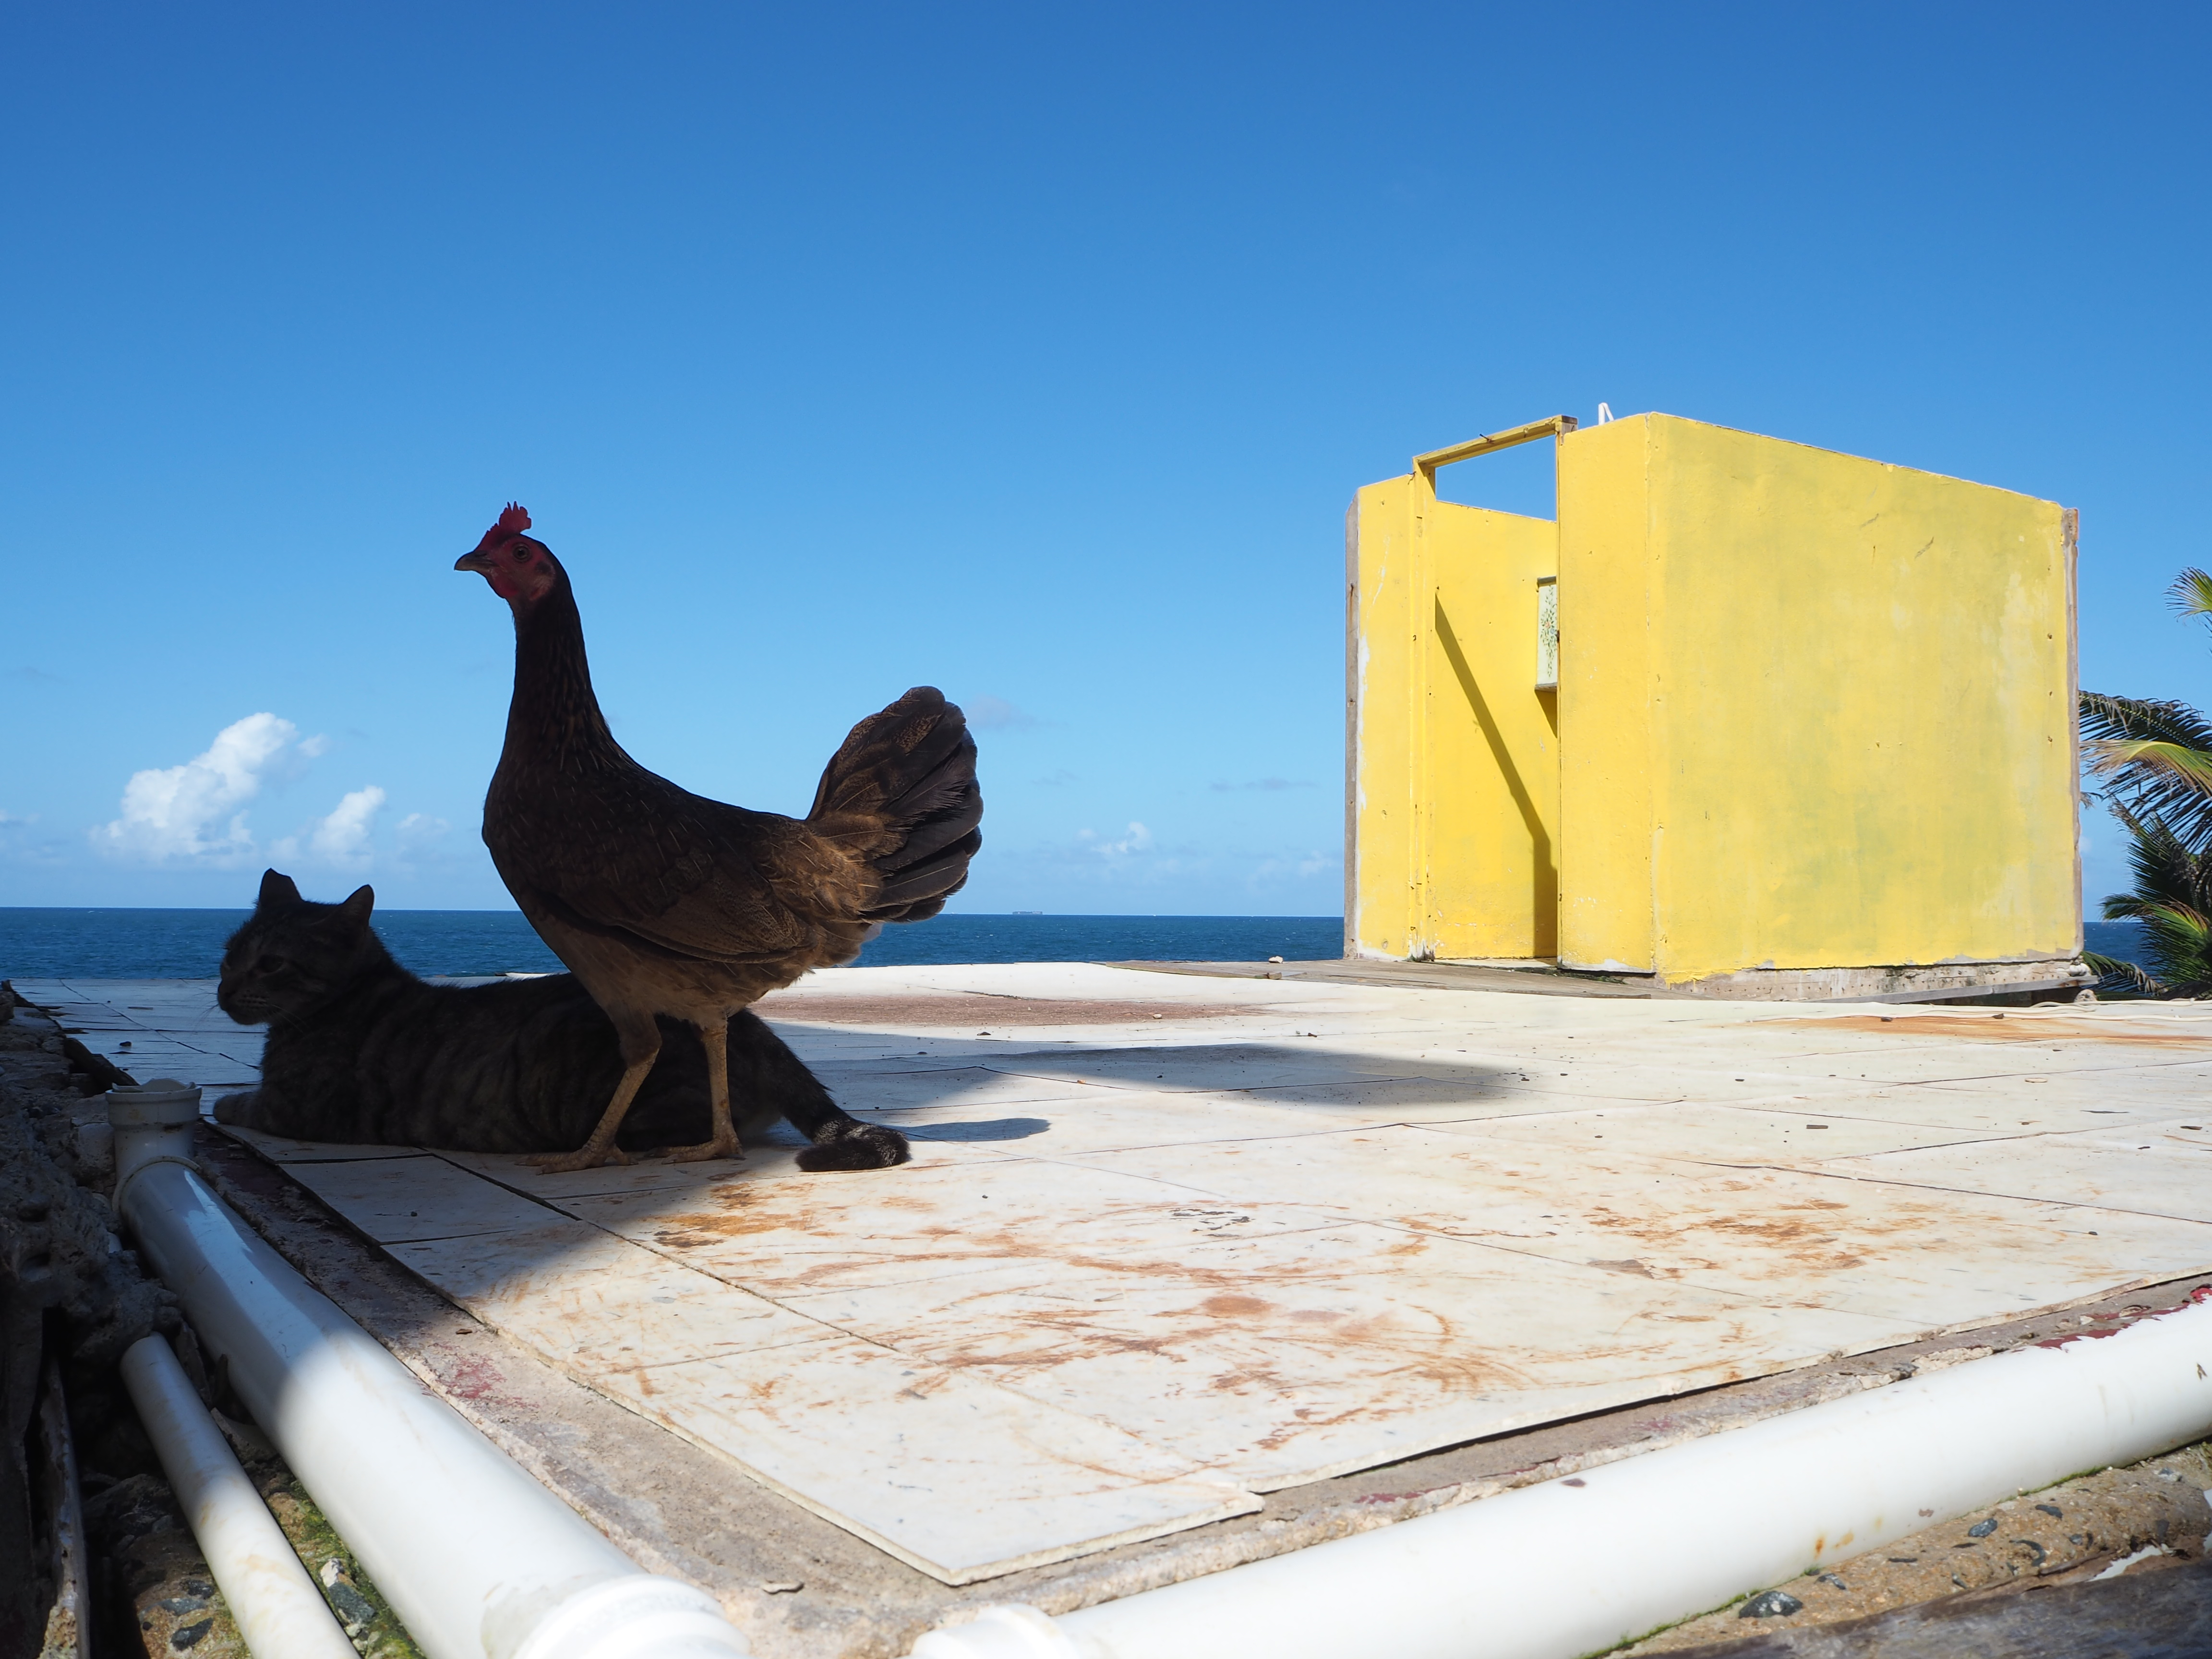 A chicken and a cat sit on a concrete slab; some walls stand behind them